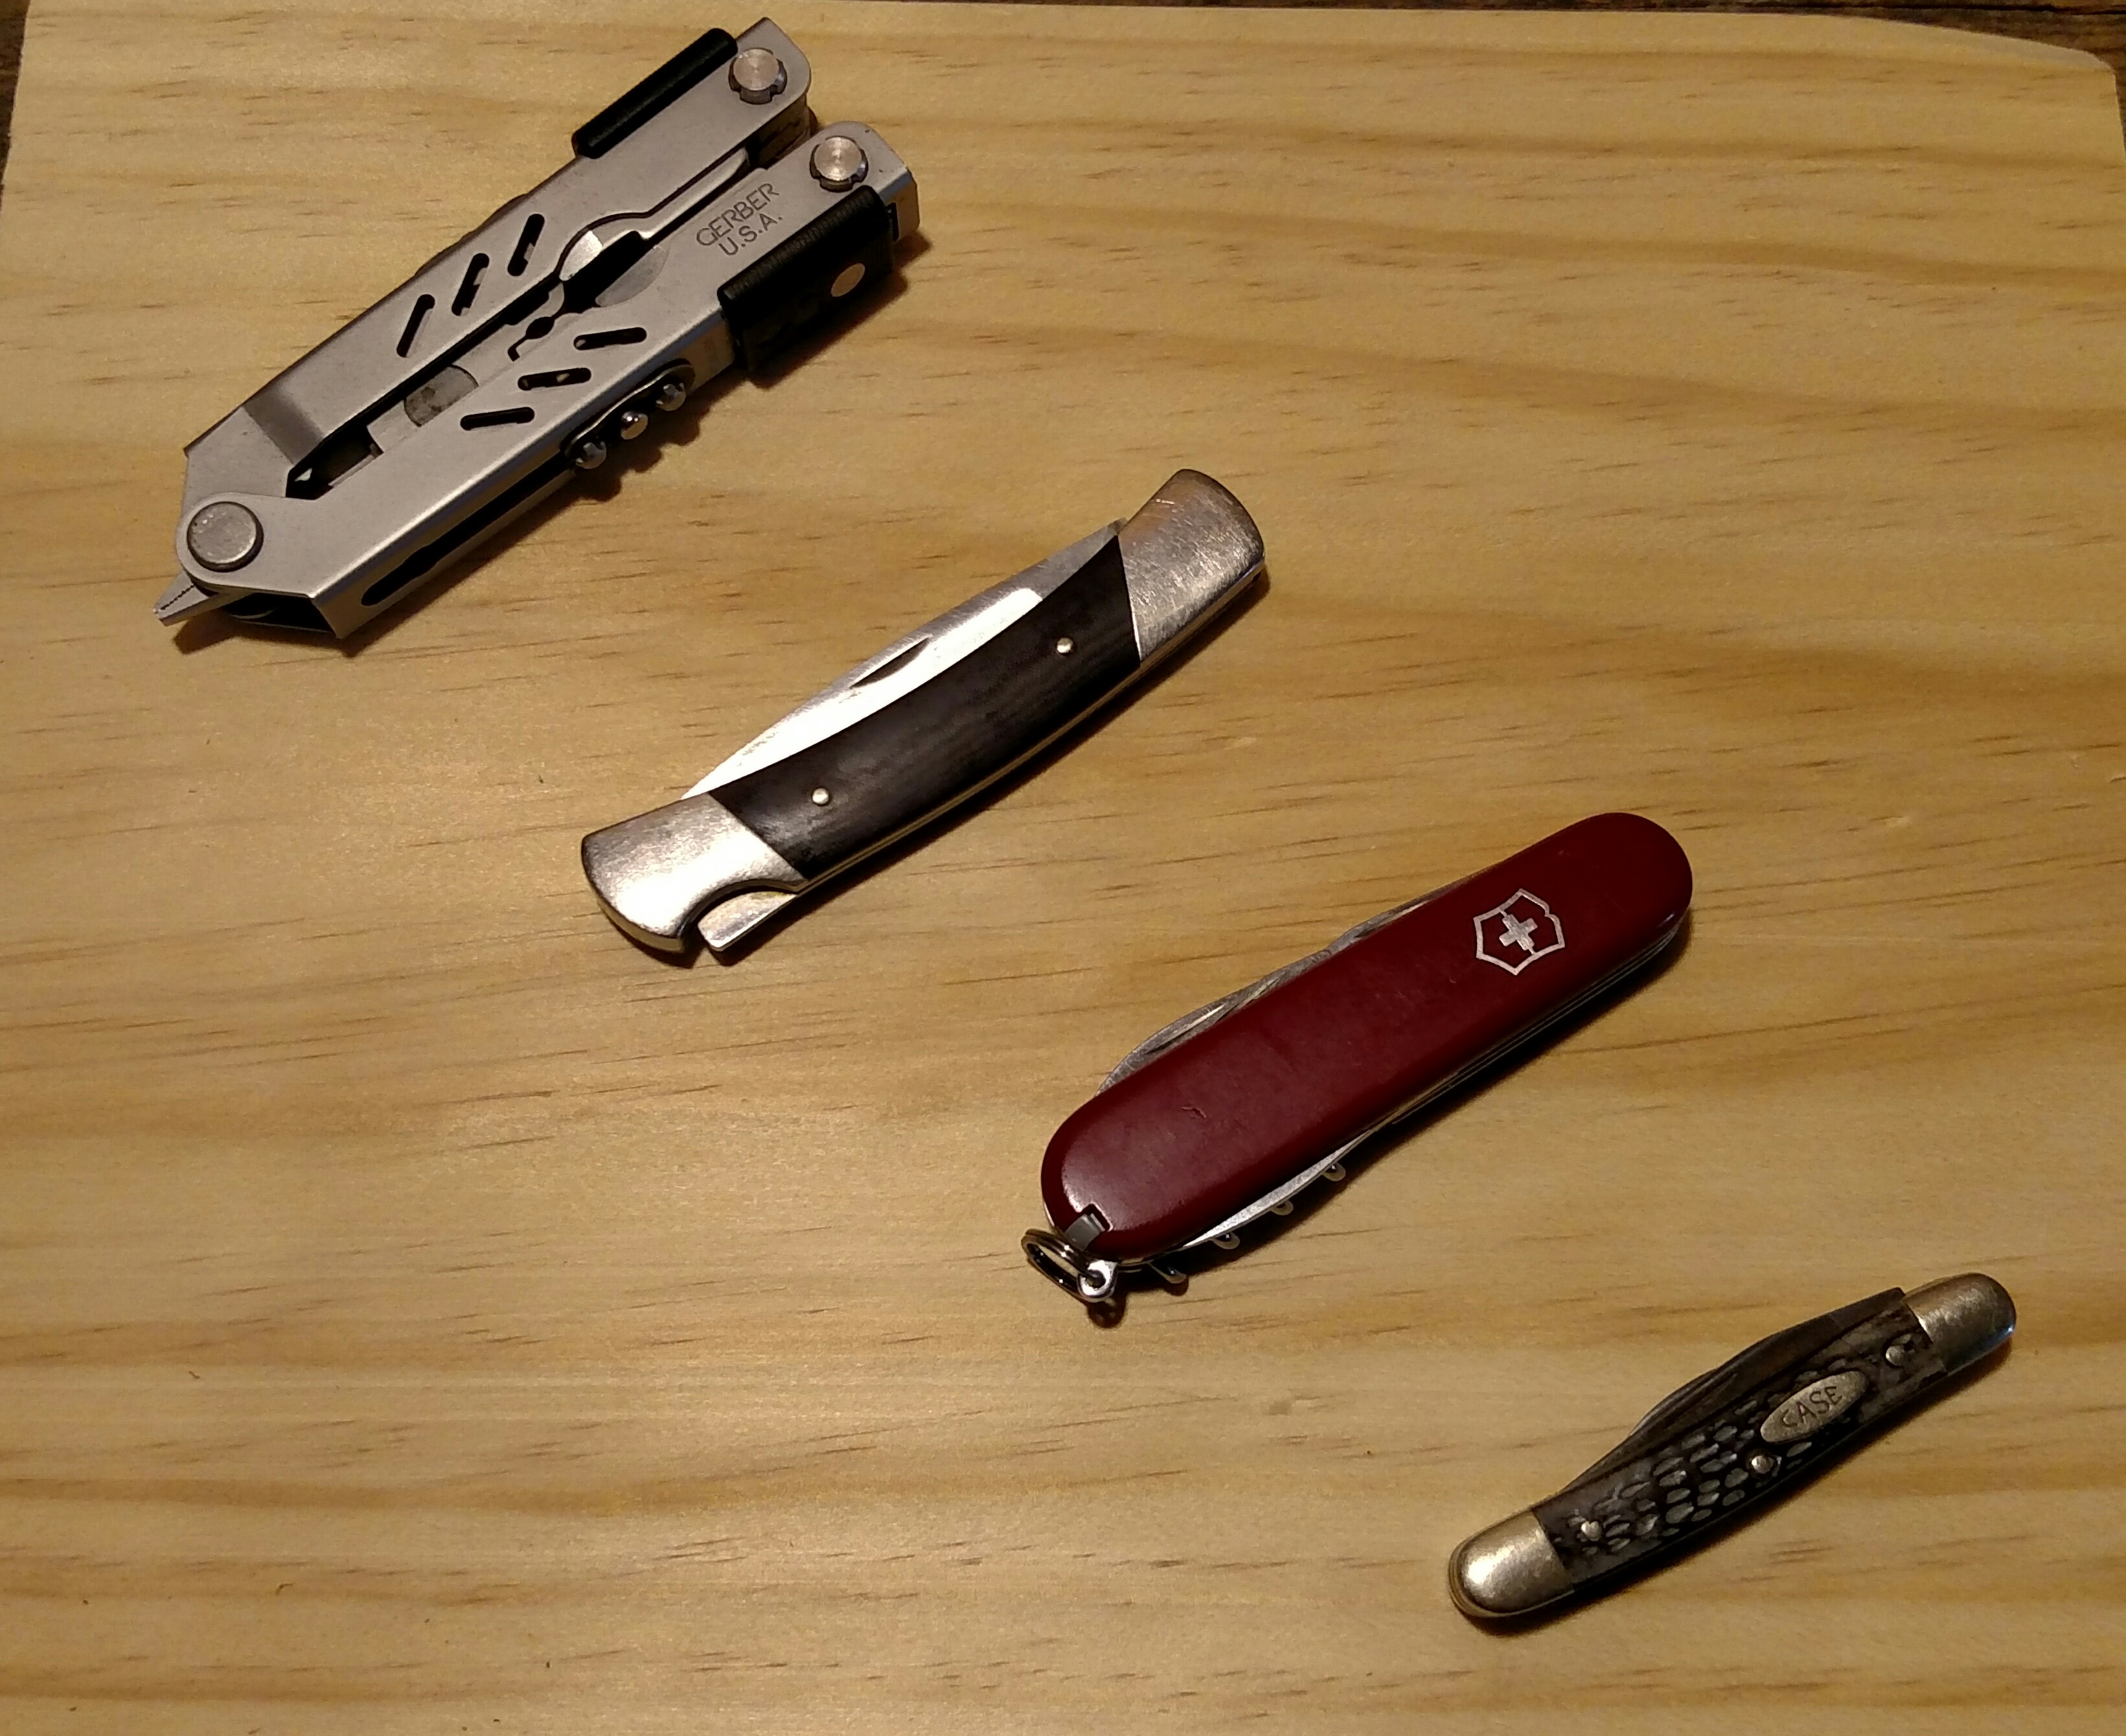 A few of the knives I've had over the years.